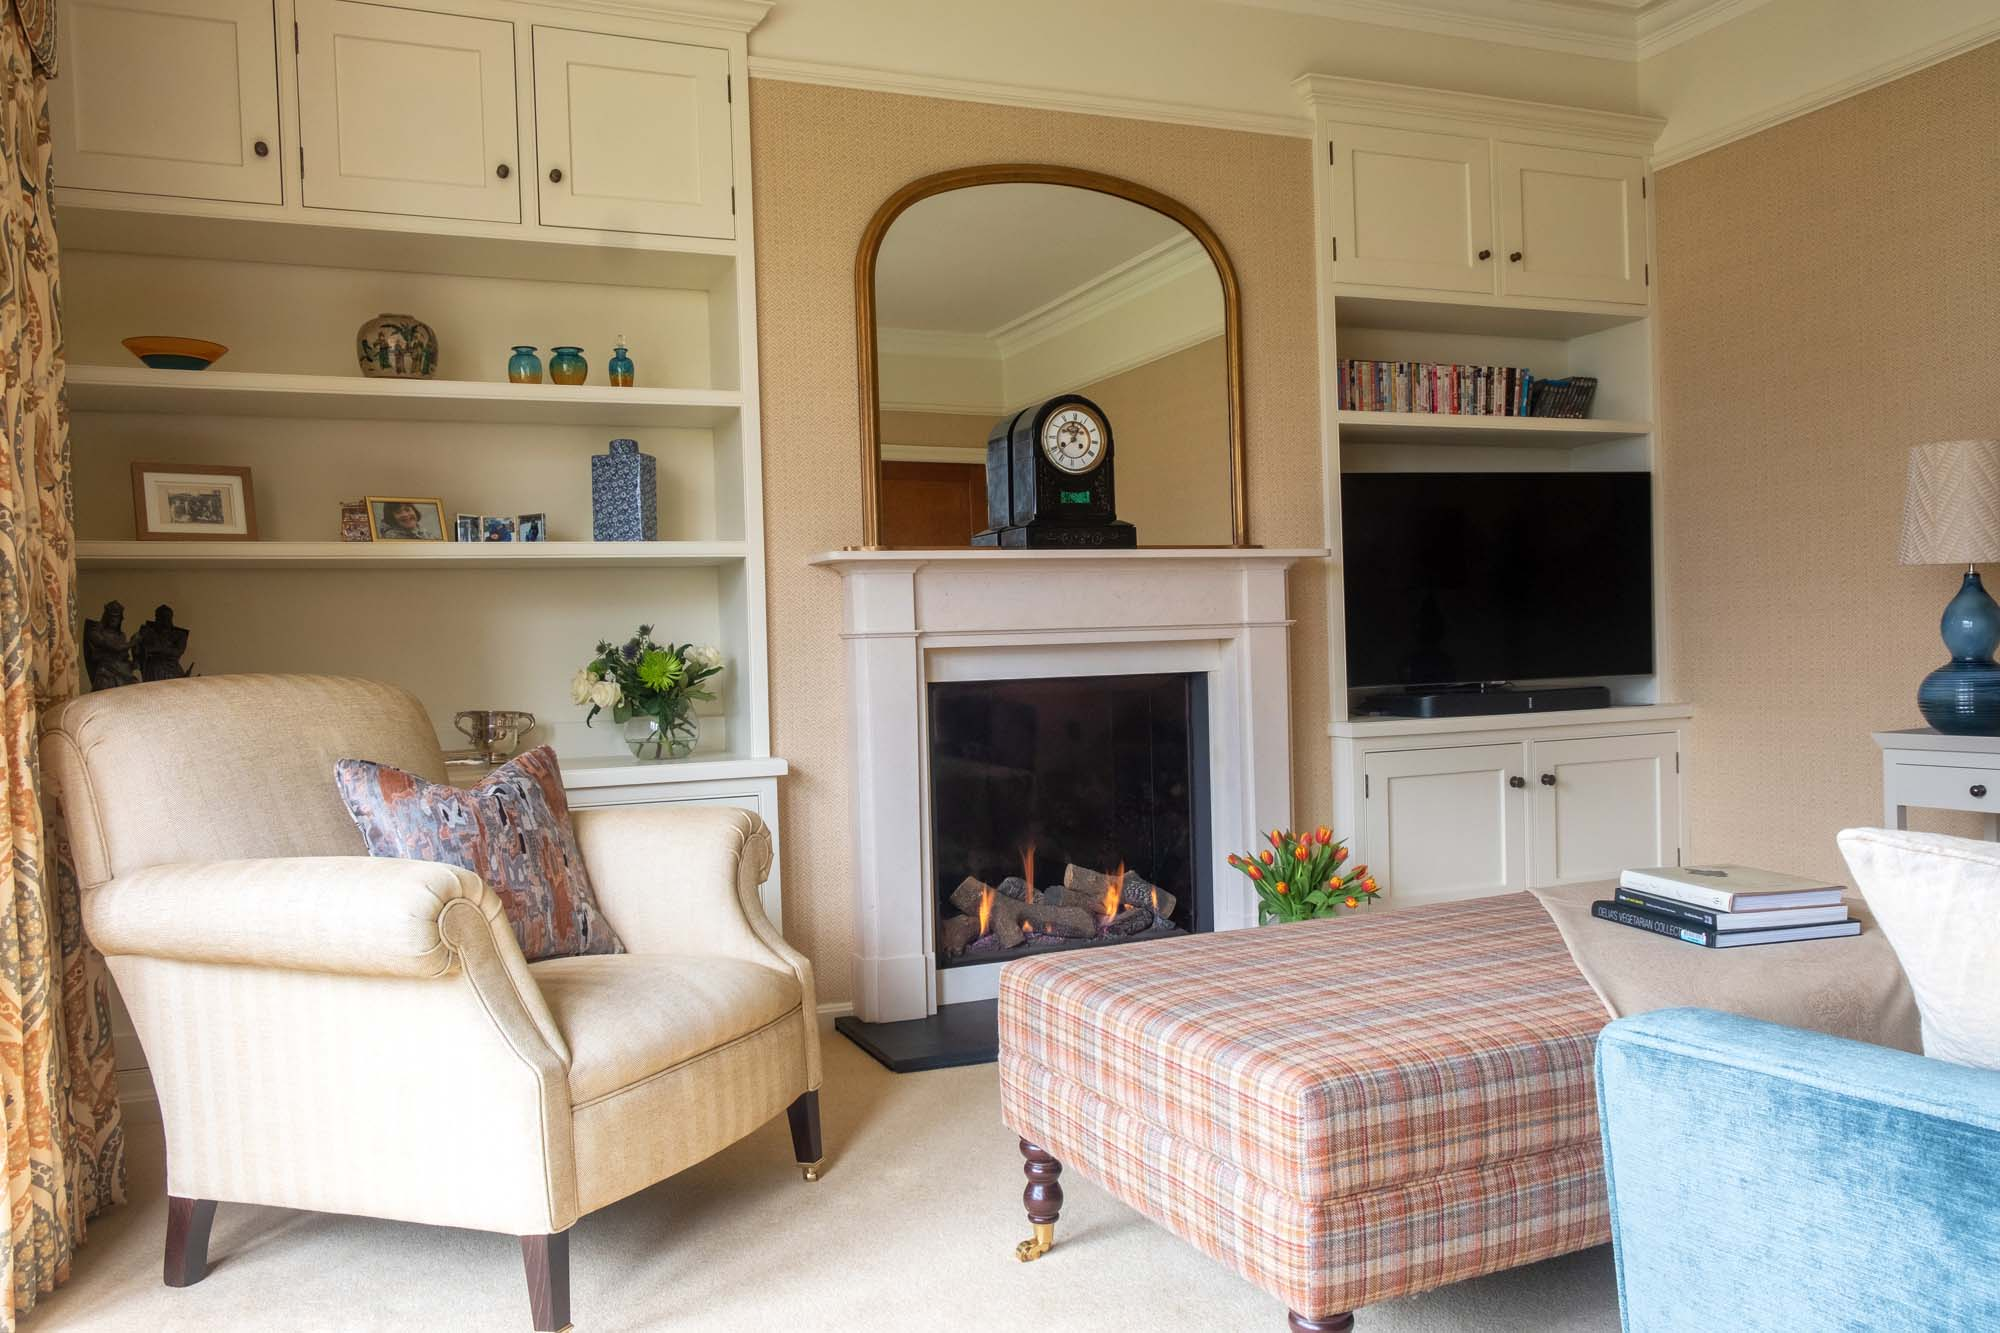 the livingroom edinburgh scottish living room interior designers edinburgh scotland robertson lindsay interiors 7033